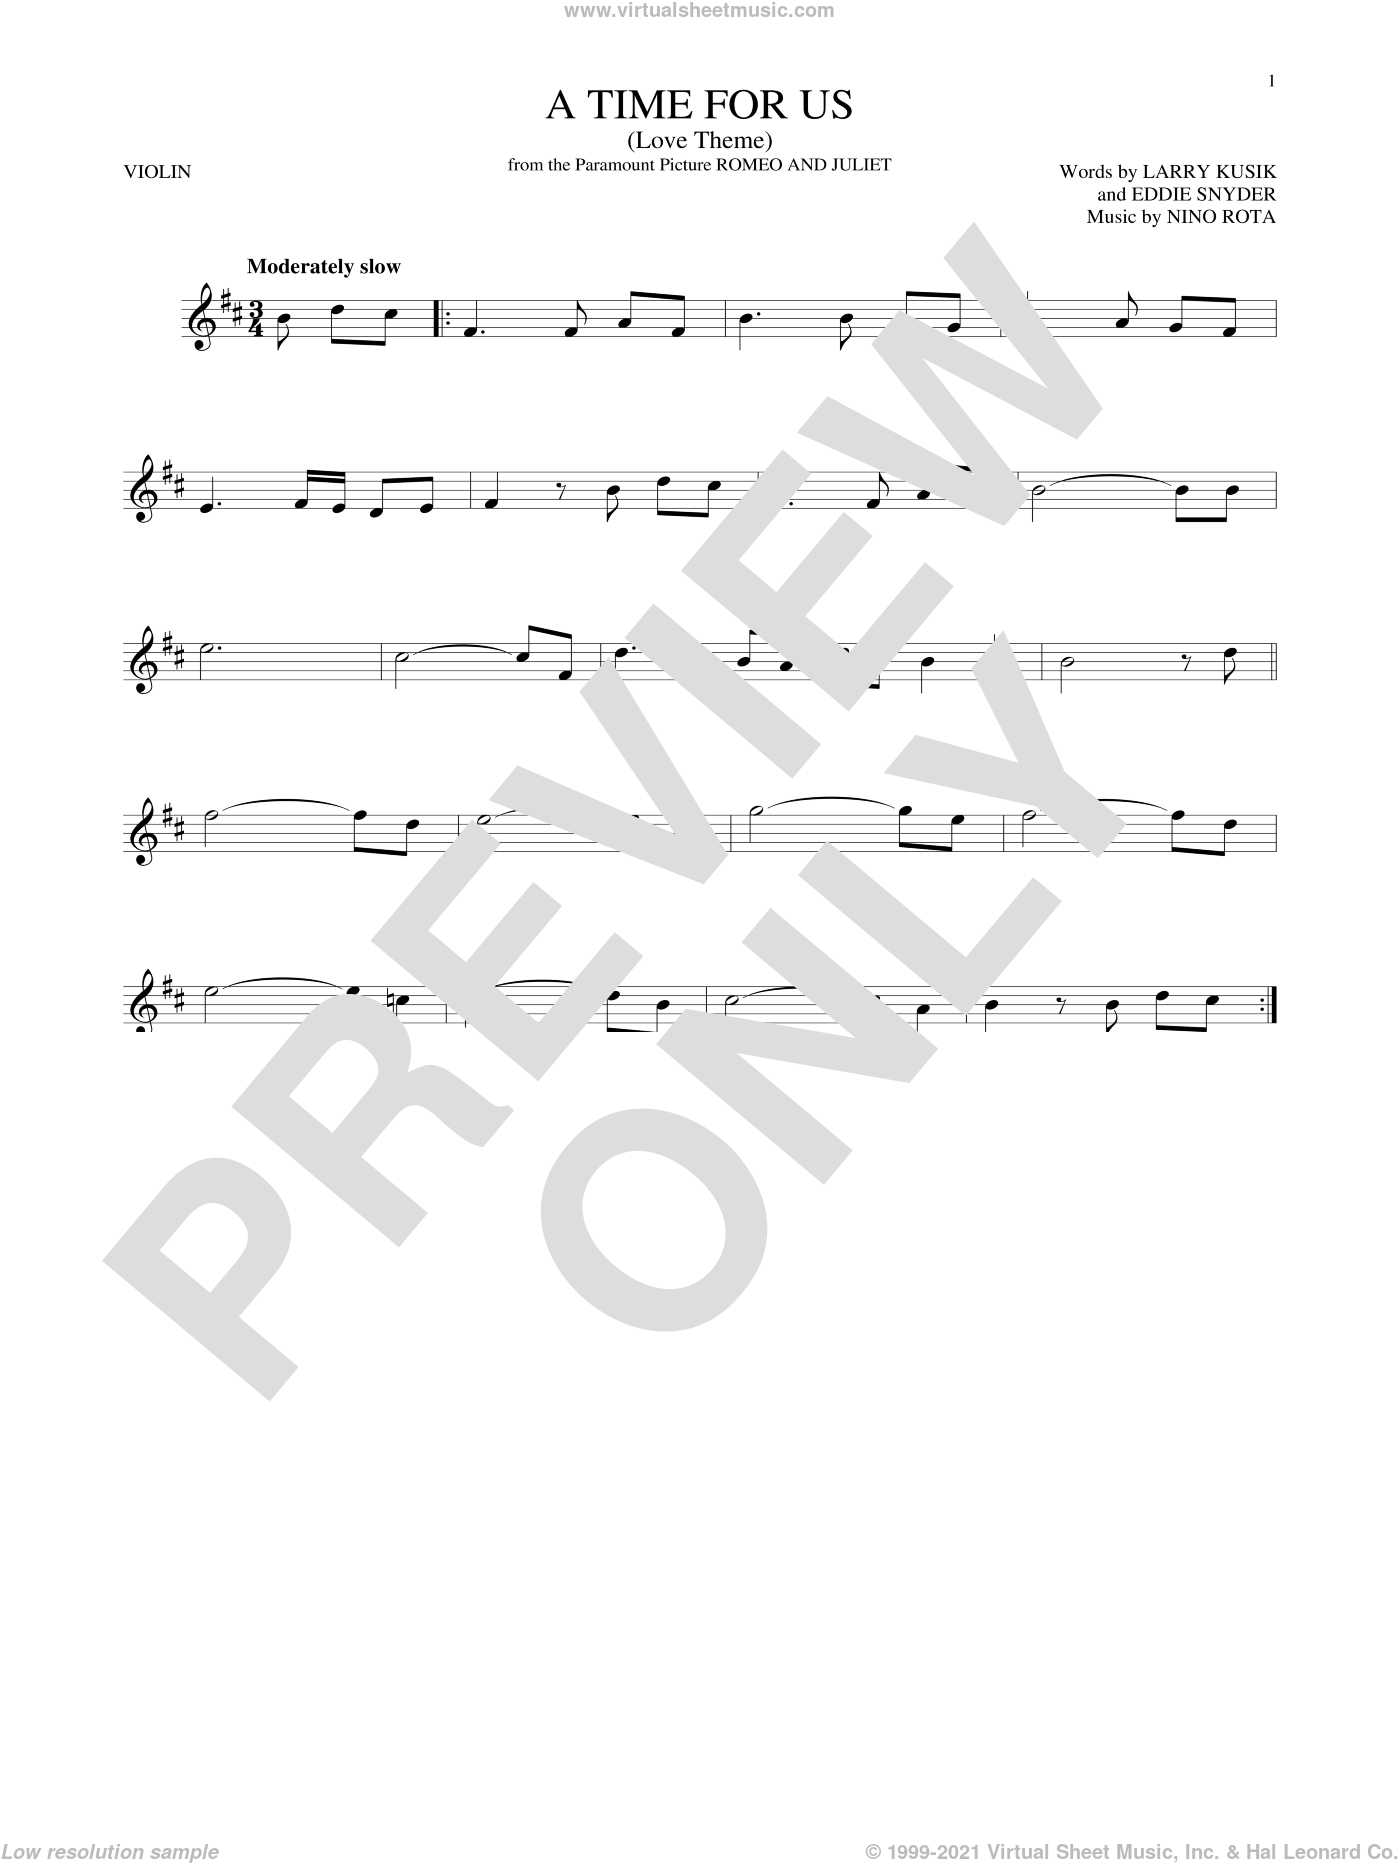 A Time For Us (Love Theme) sheet music for violin solo by Nino Rota, Eddie Snyder and Larry Kusik, intermediate skill level